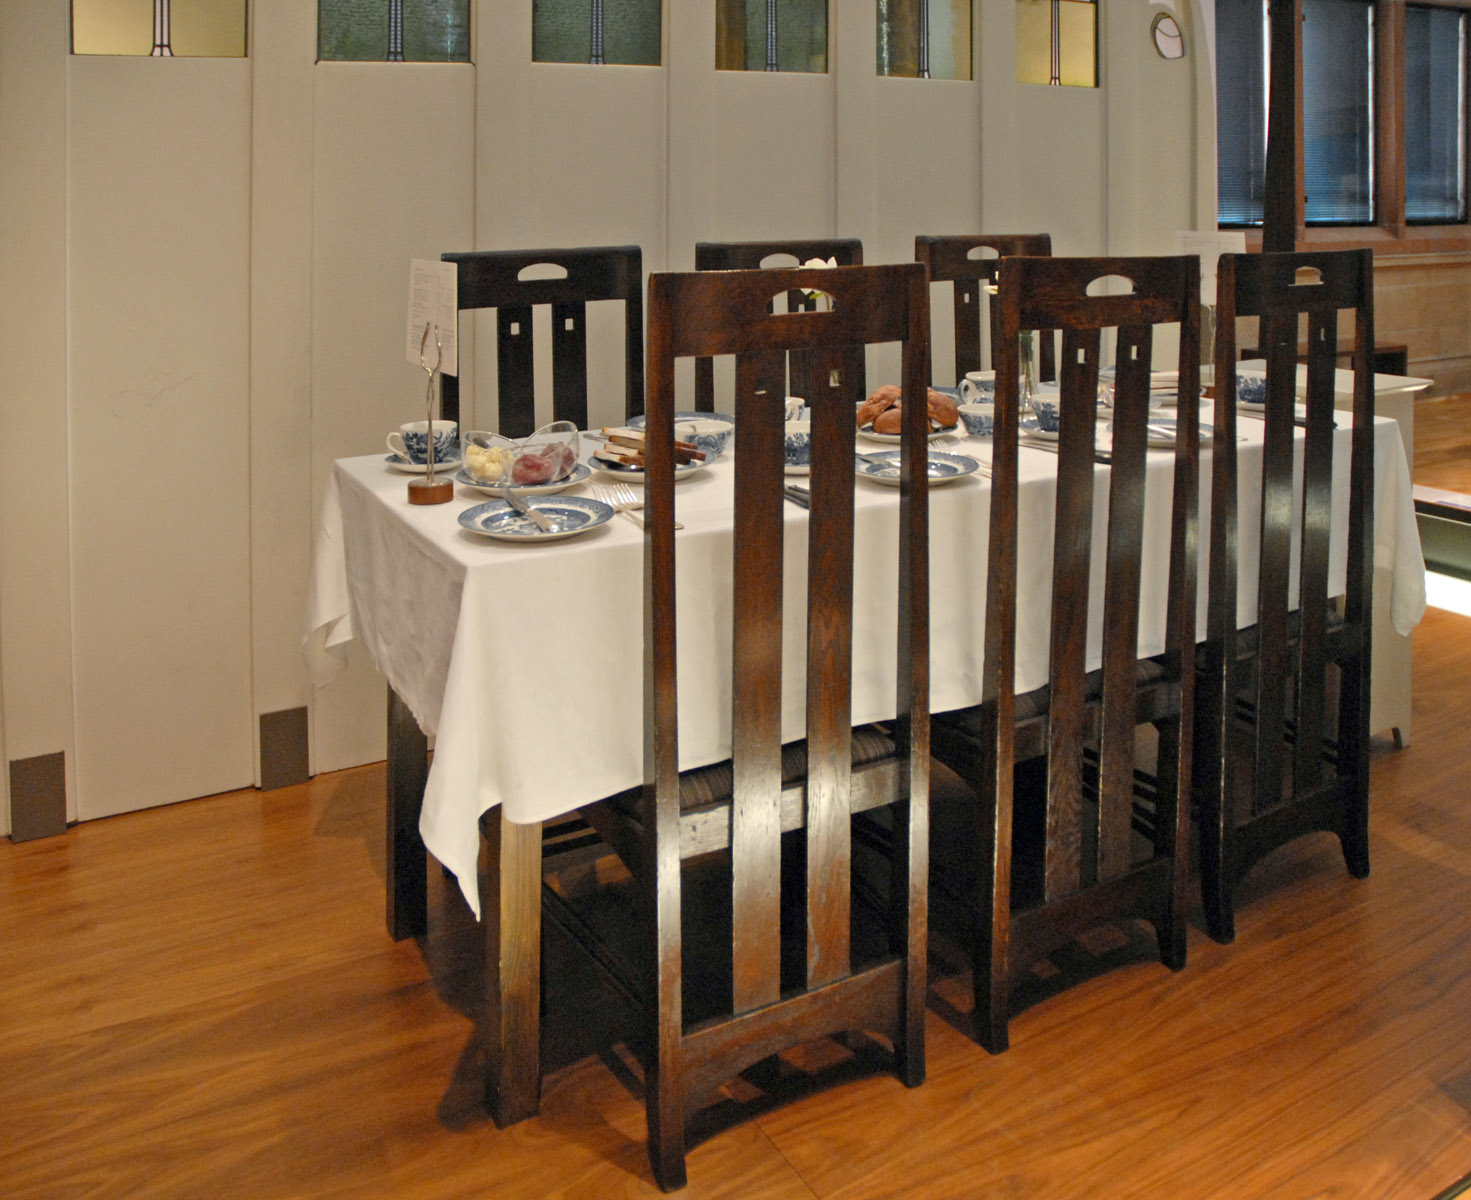 datoteka charles rennie mackintosh kelvingrove glasgow 3838792015 jpg wikipedia. Black Bedroom Furniture Sets. Home Design Ideas